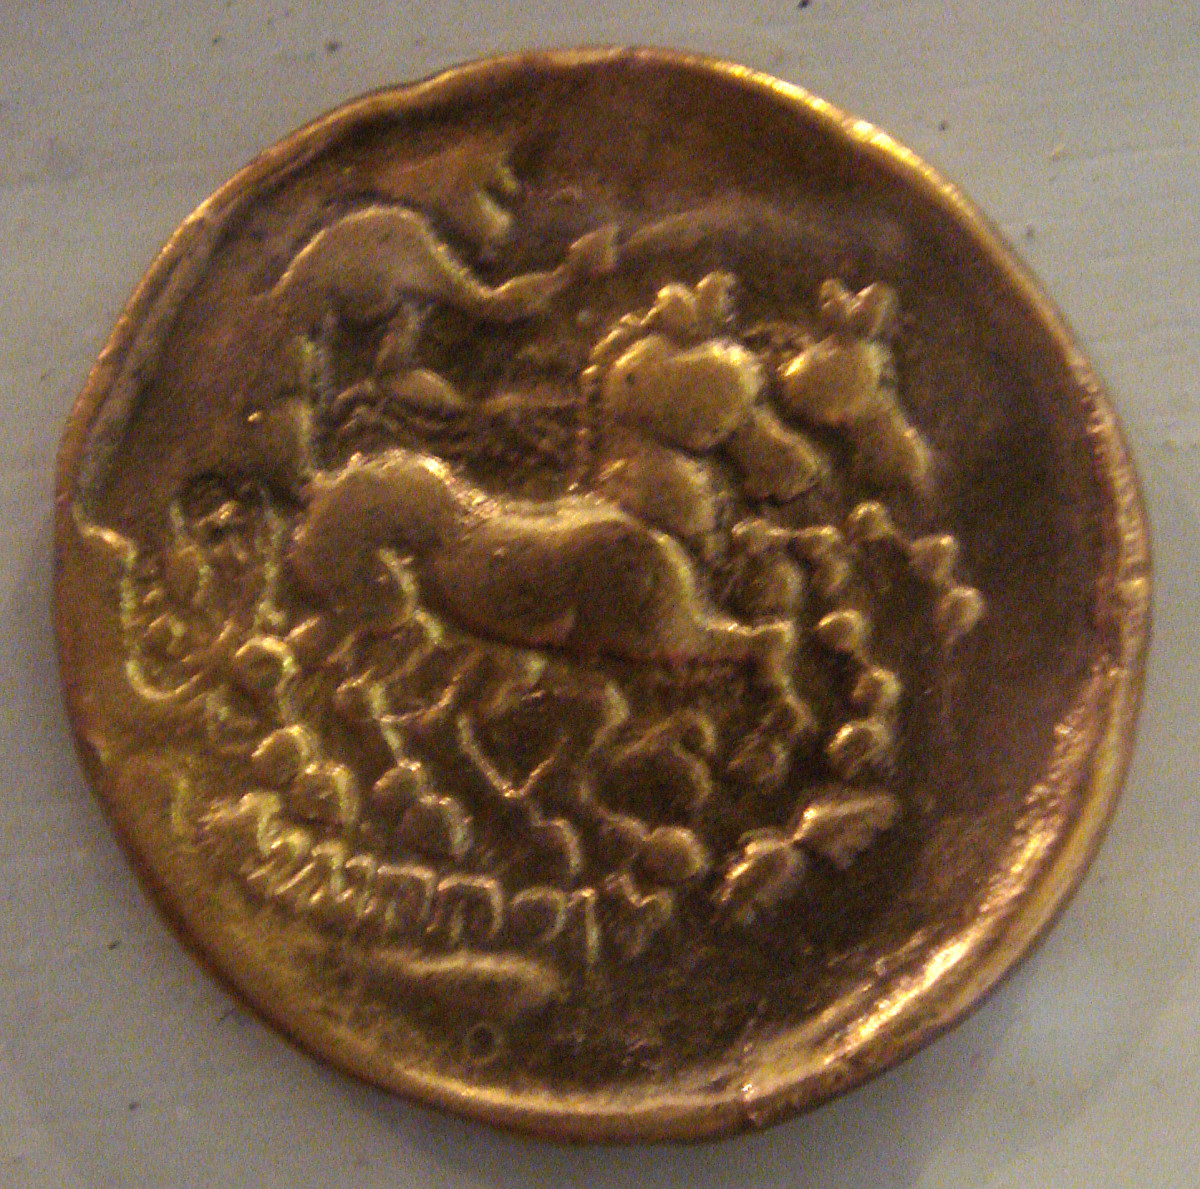 Sequani coin depicting a horse